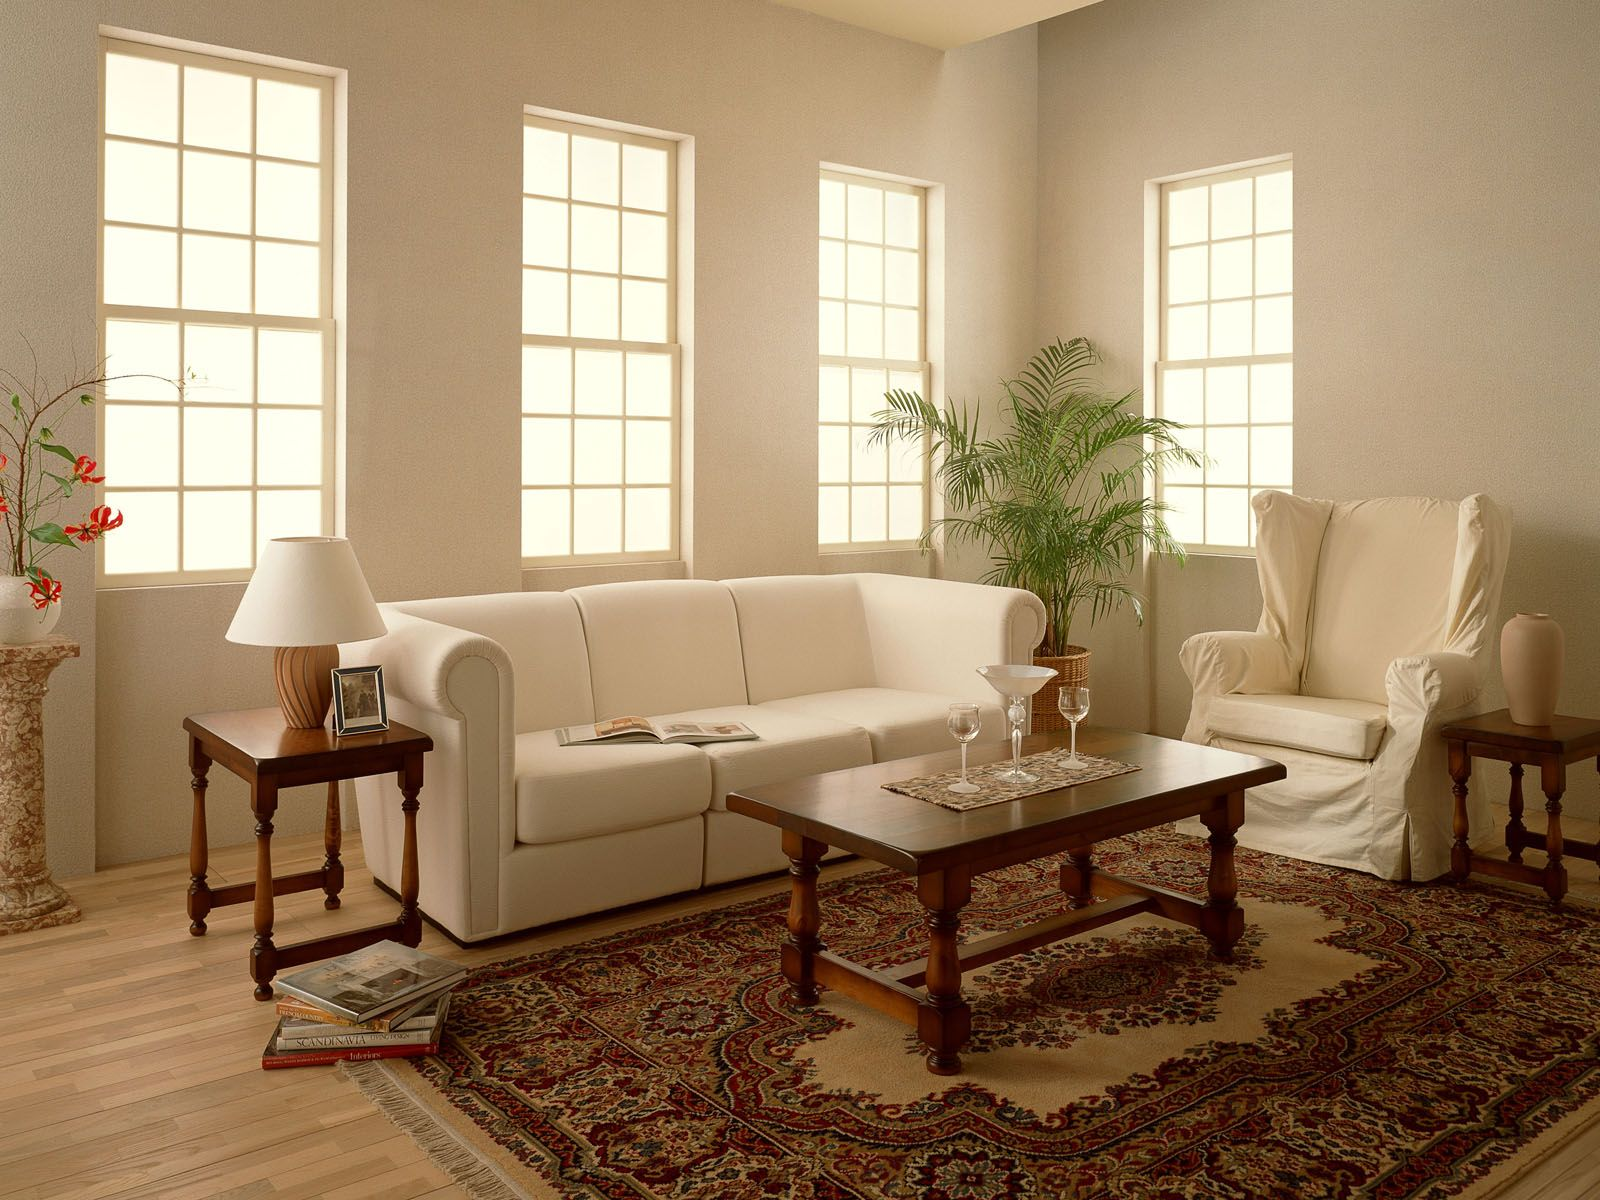 Formal Living Room With Coffee Table Home Decor Pinterest